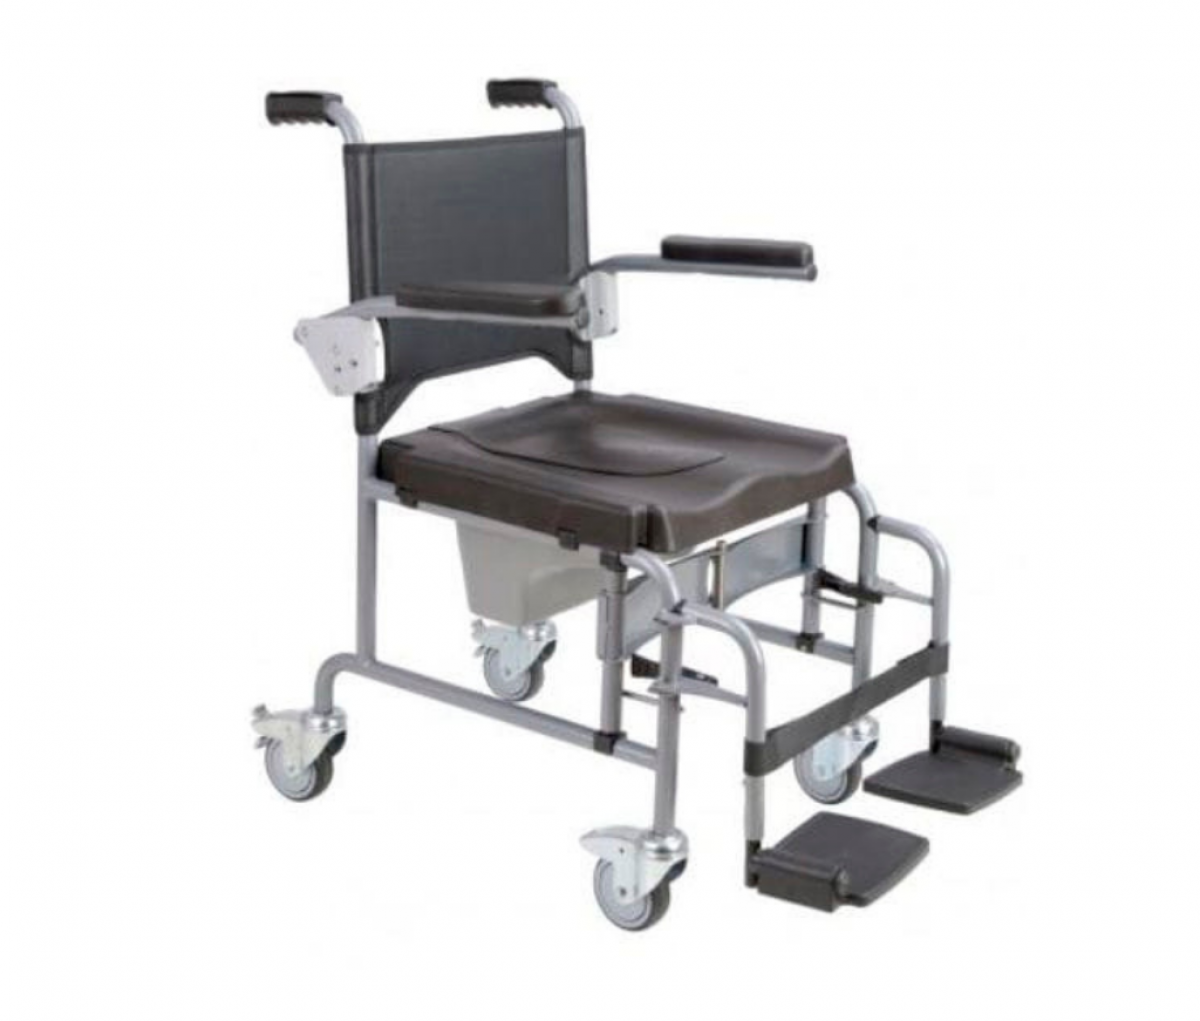 Commode Chair with Caster Wheel SQ1010